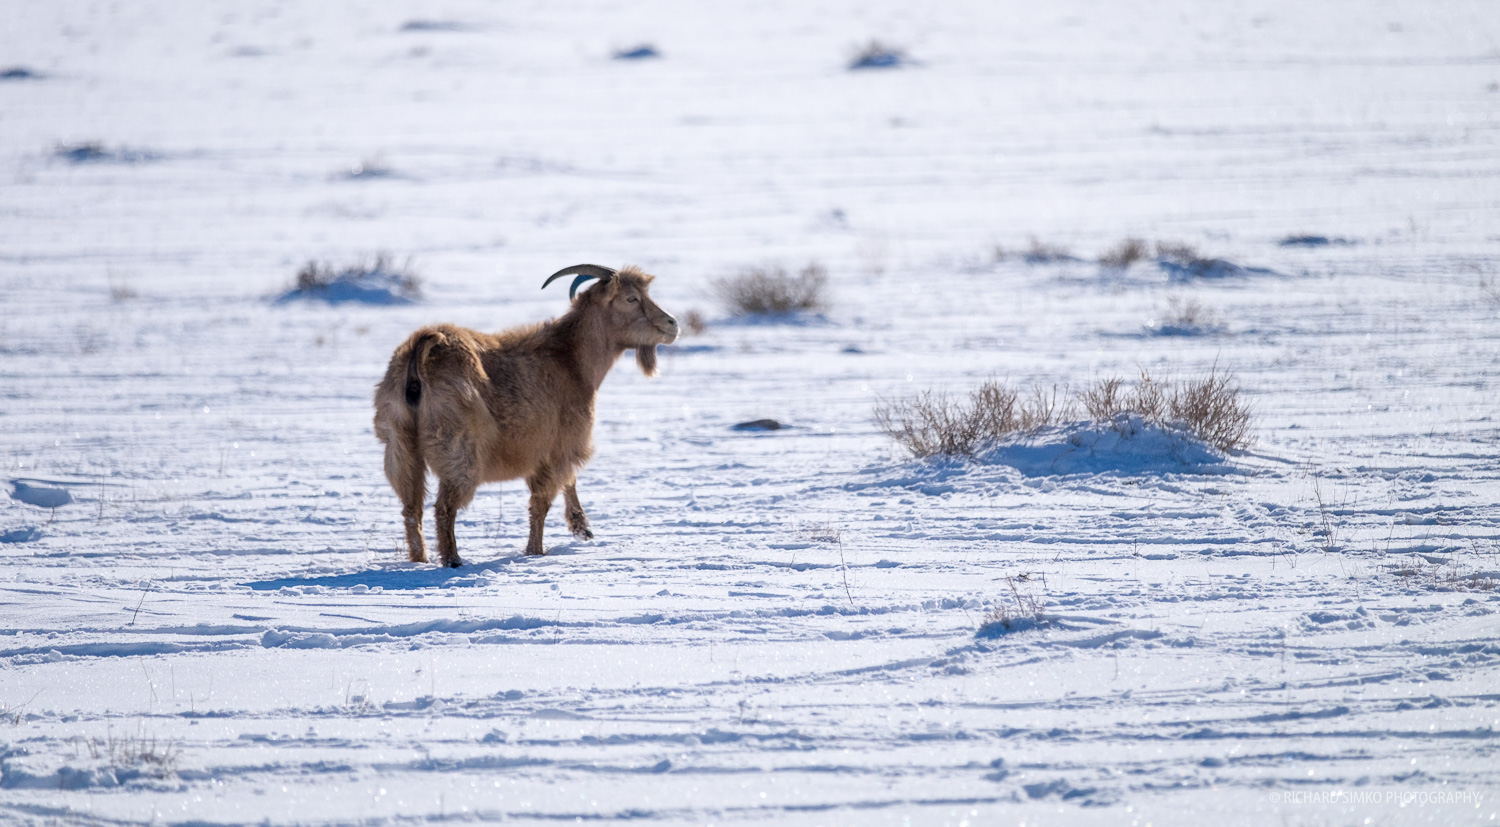 This old injured goat was slowly limping behind the main herd